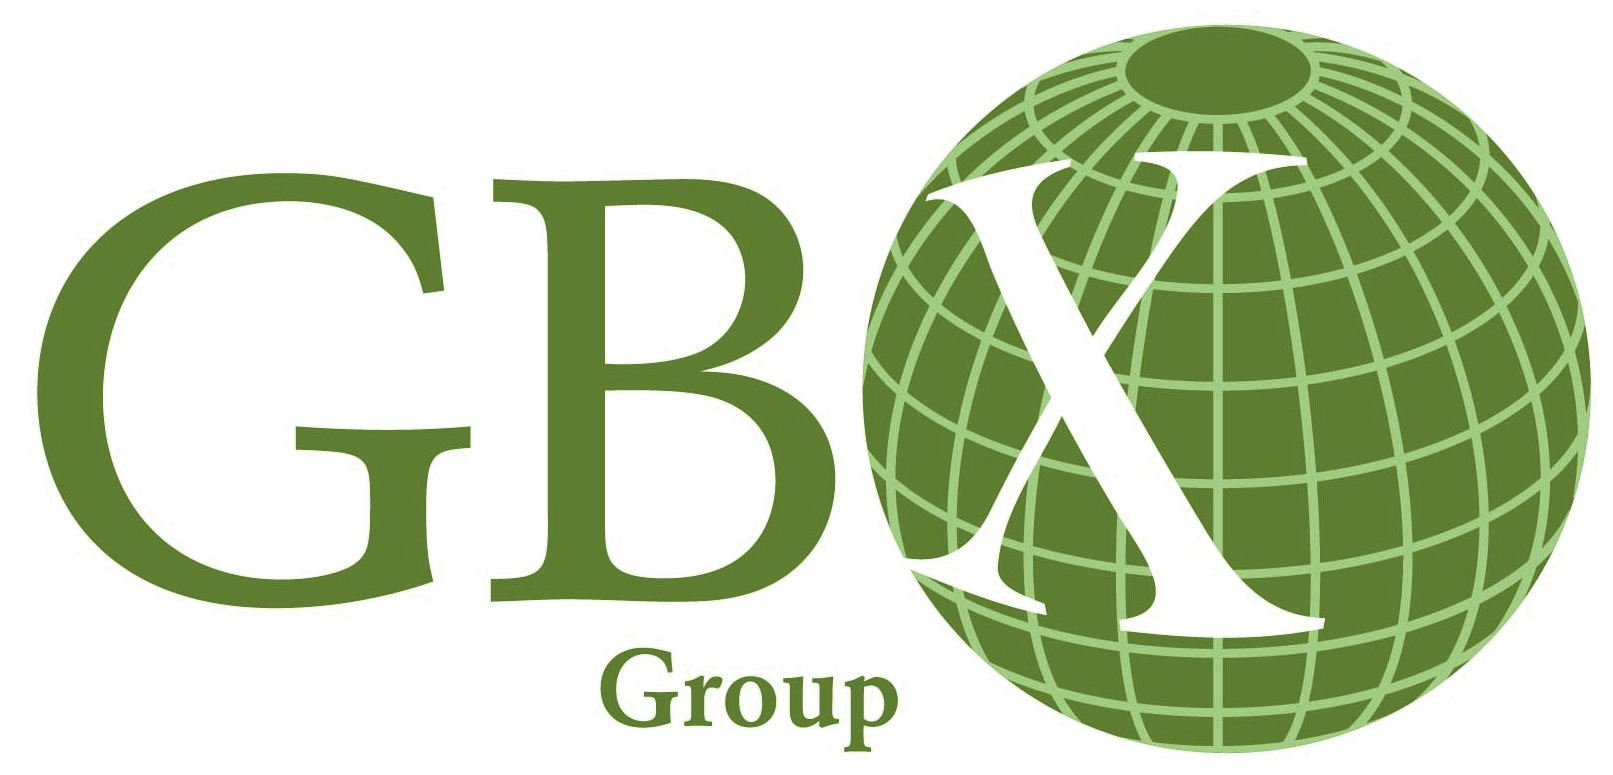 GBX Group Logo 2